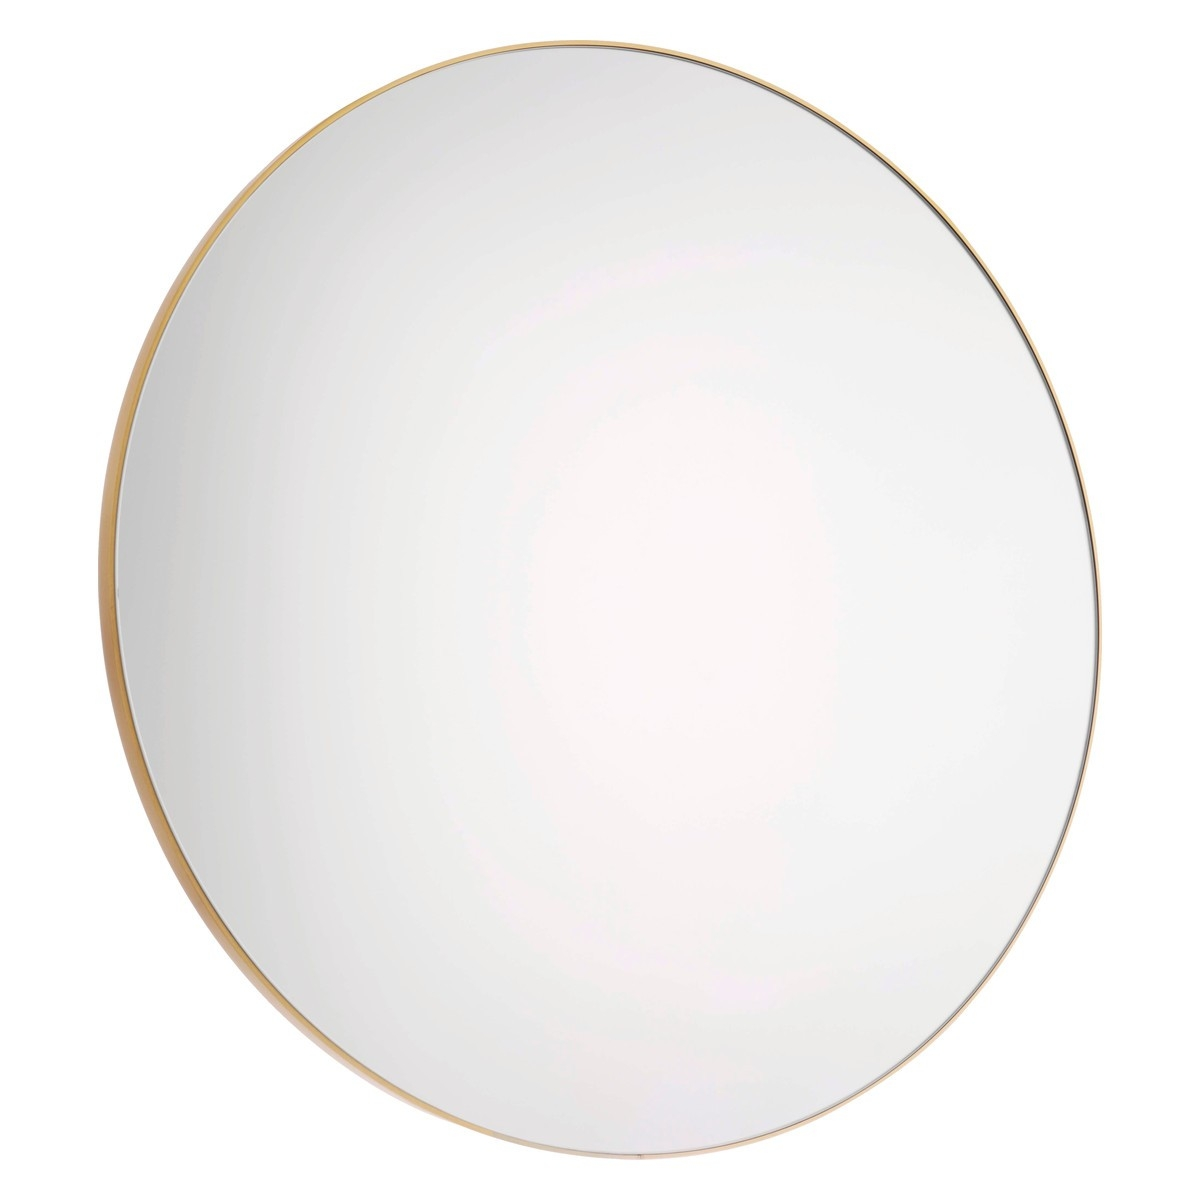 Patsy Large Round Gold Wall Mirror D82cm Gold Wall Mirror And Throughout Round Large Mirrors (View 4 of 15)